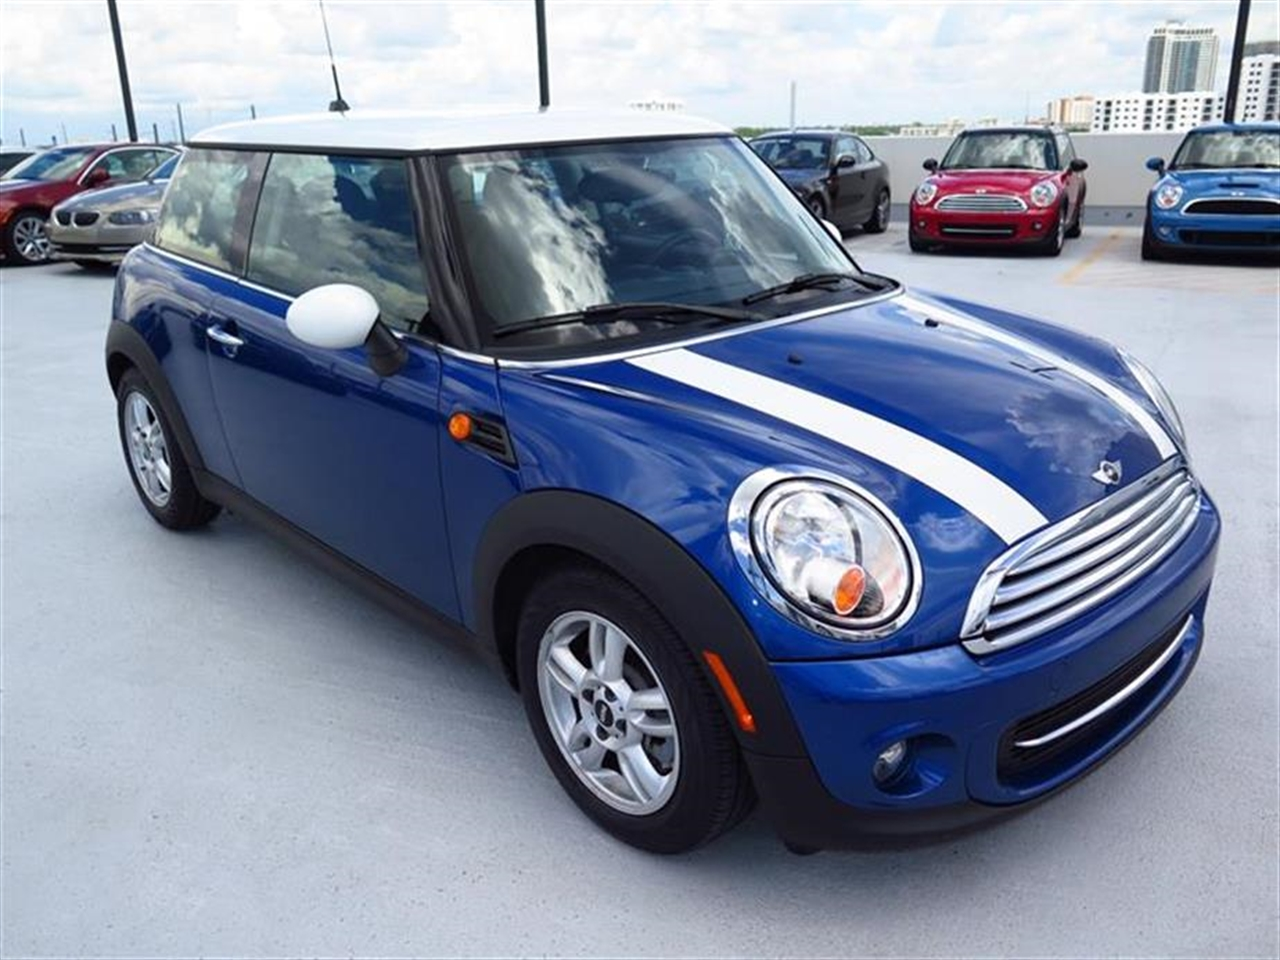 2013 MINI COOPER 2dr Cpe 14522 miles 1 rear cup holder 12V auxiliary pwr outlet in cockpit  lu